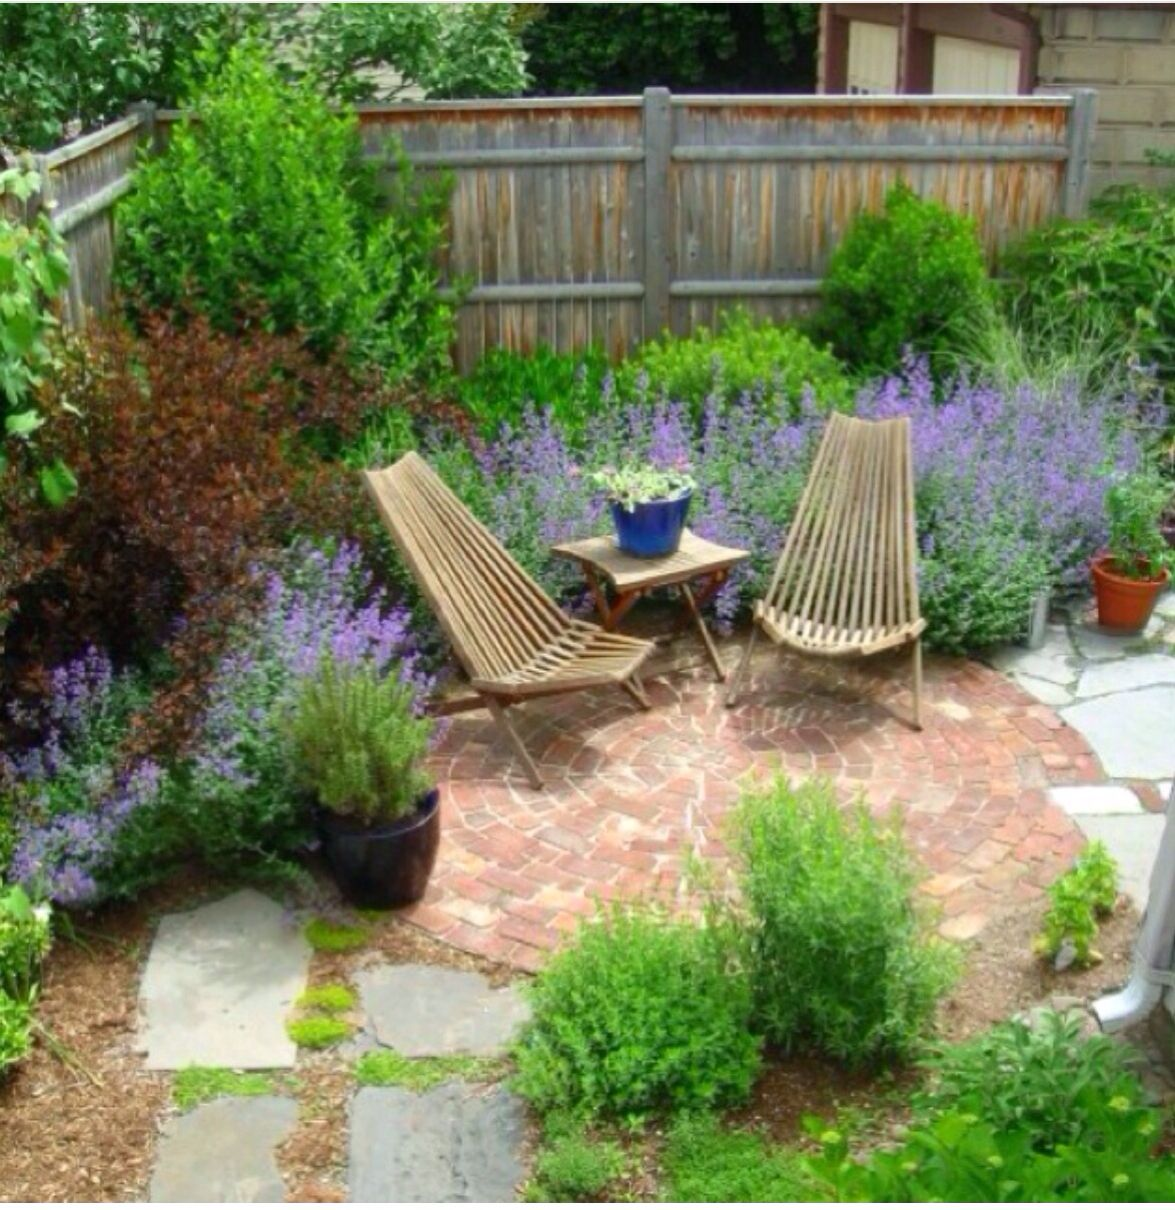 Front Yard Landscaping Ideas Small Area: Howell Ave Back Garden